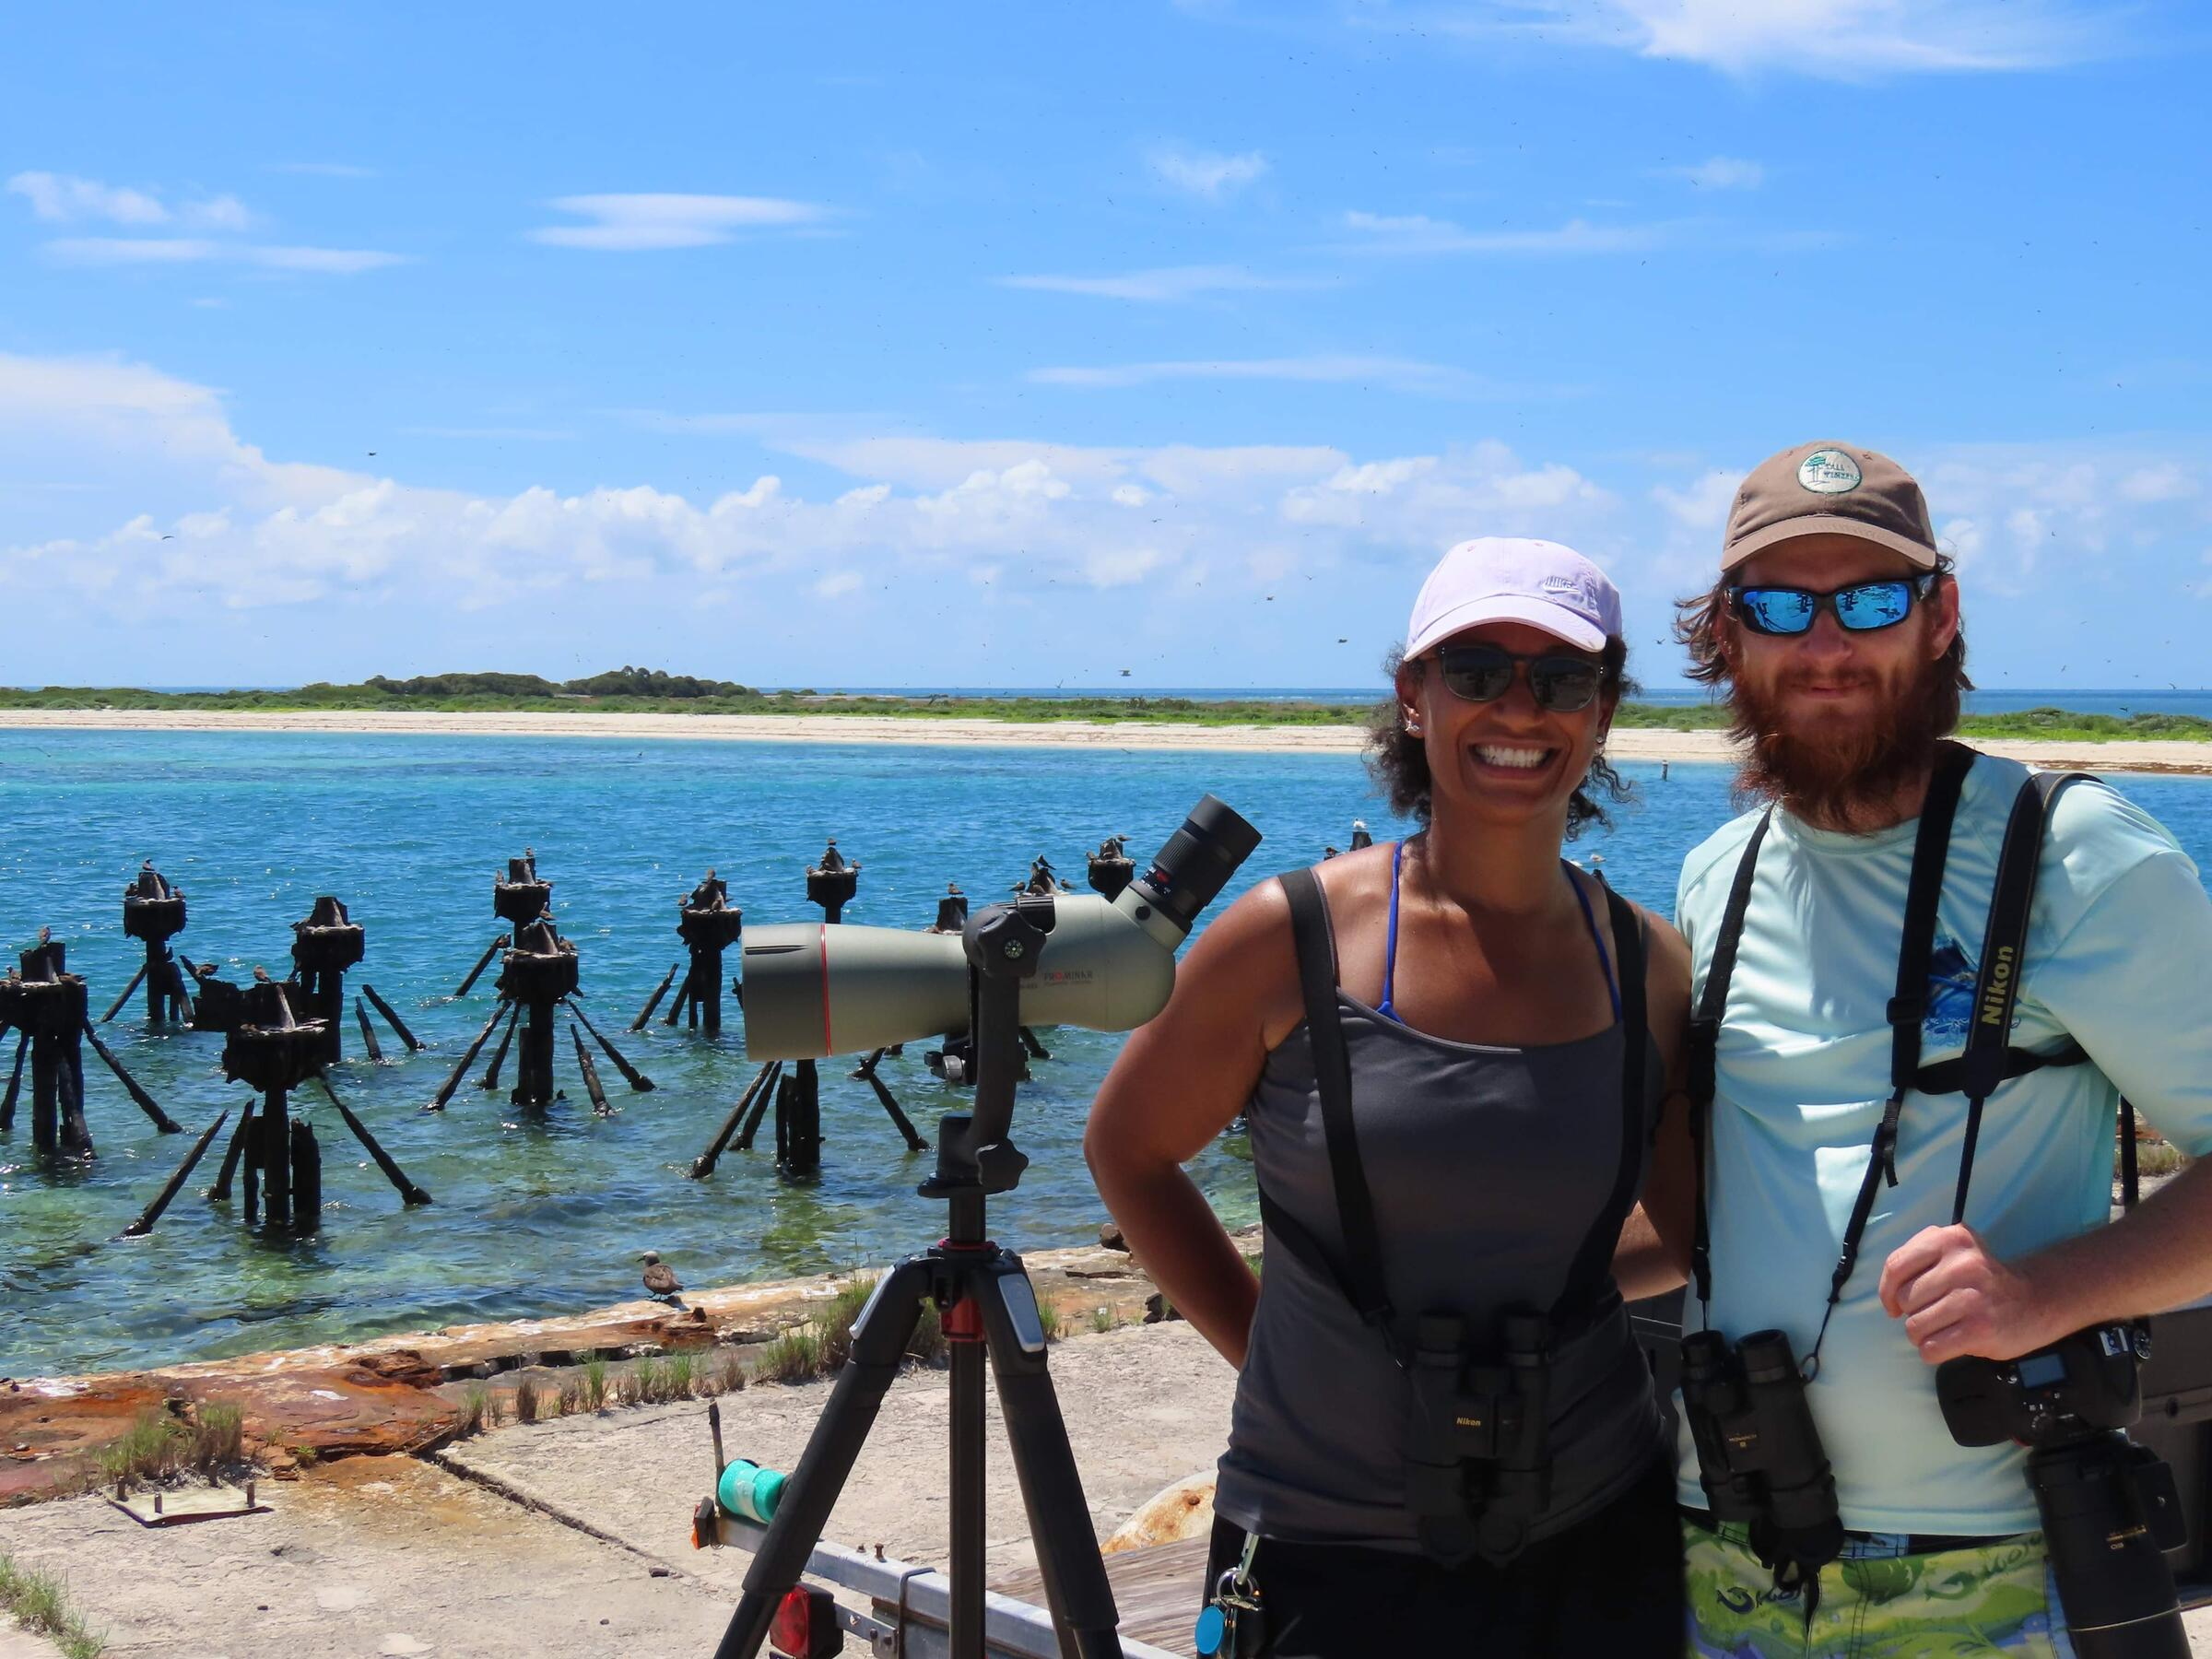 Natasza Fontaine and Robert Gundy birding in the Dry Tortugas.